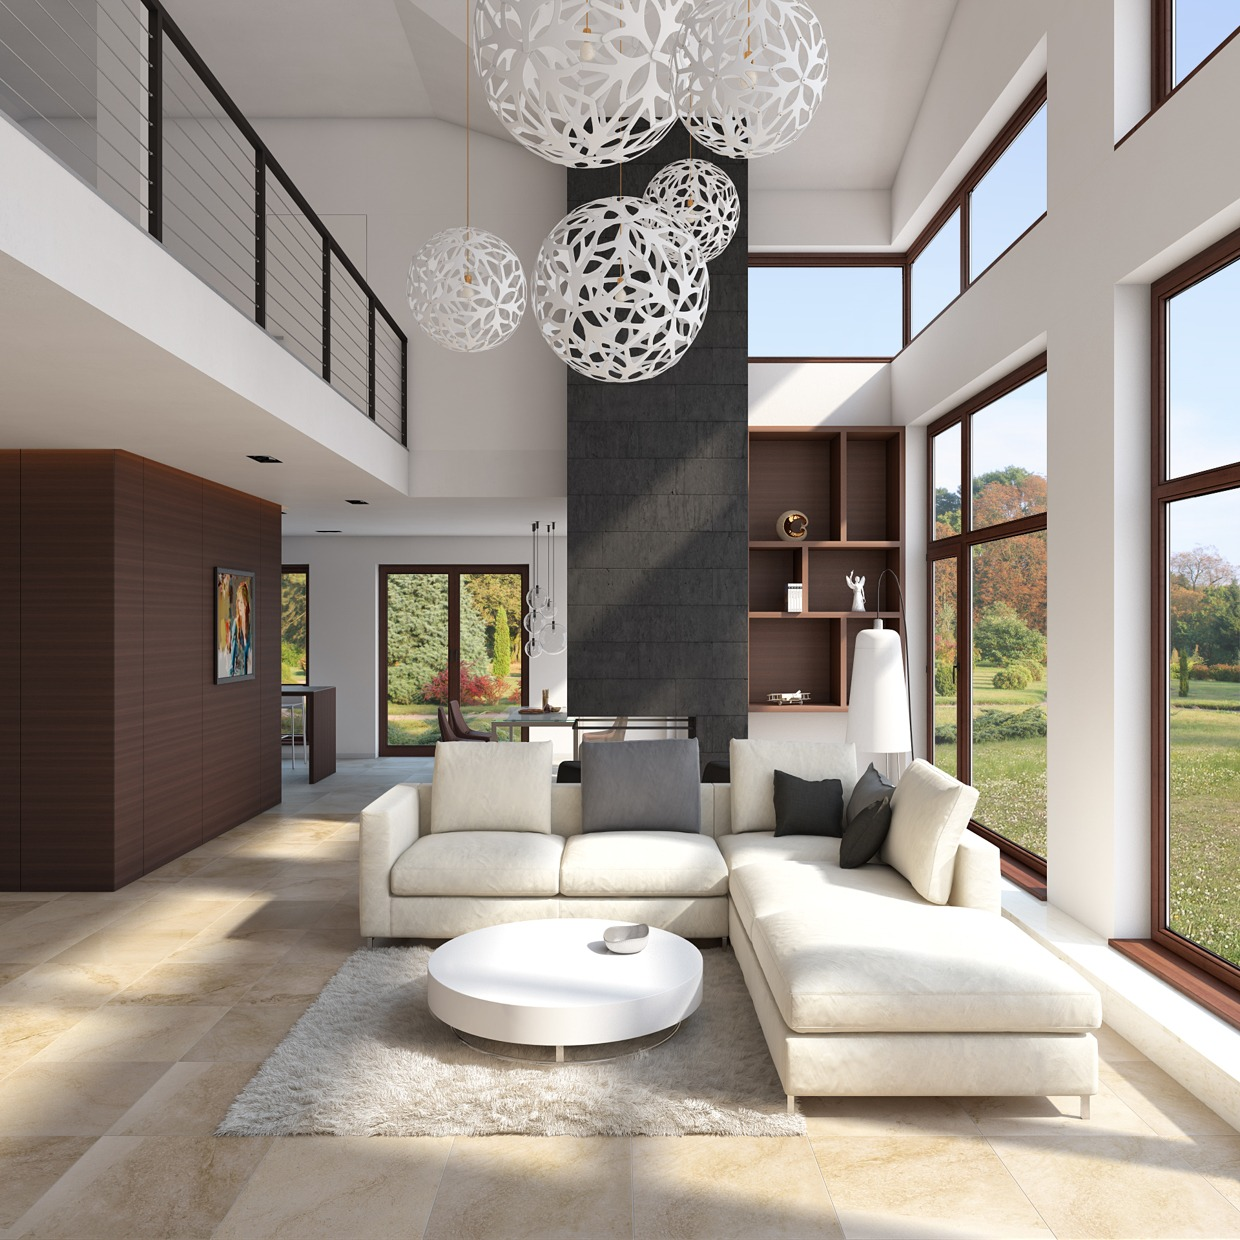 Cream Sectional - 4 homes from the same designer showcase a diversity of style